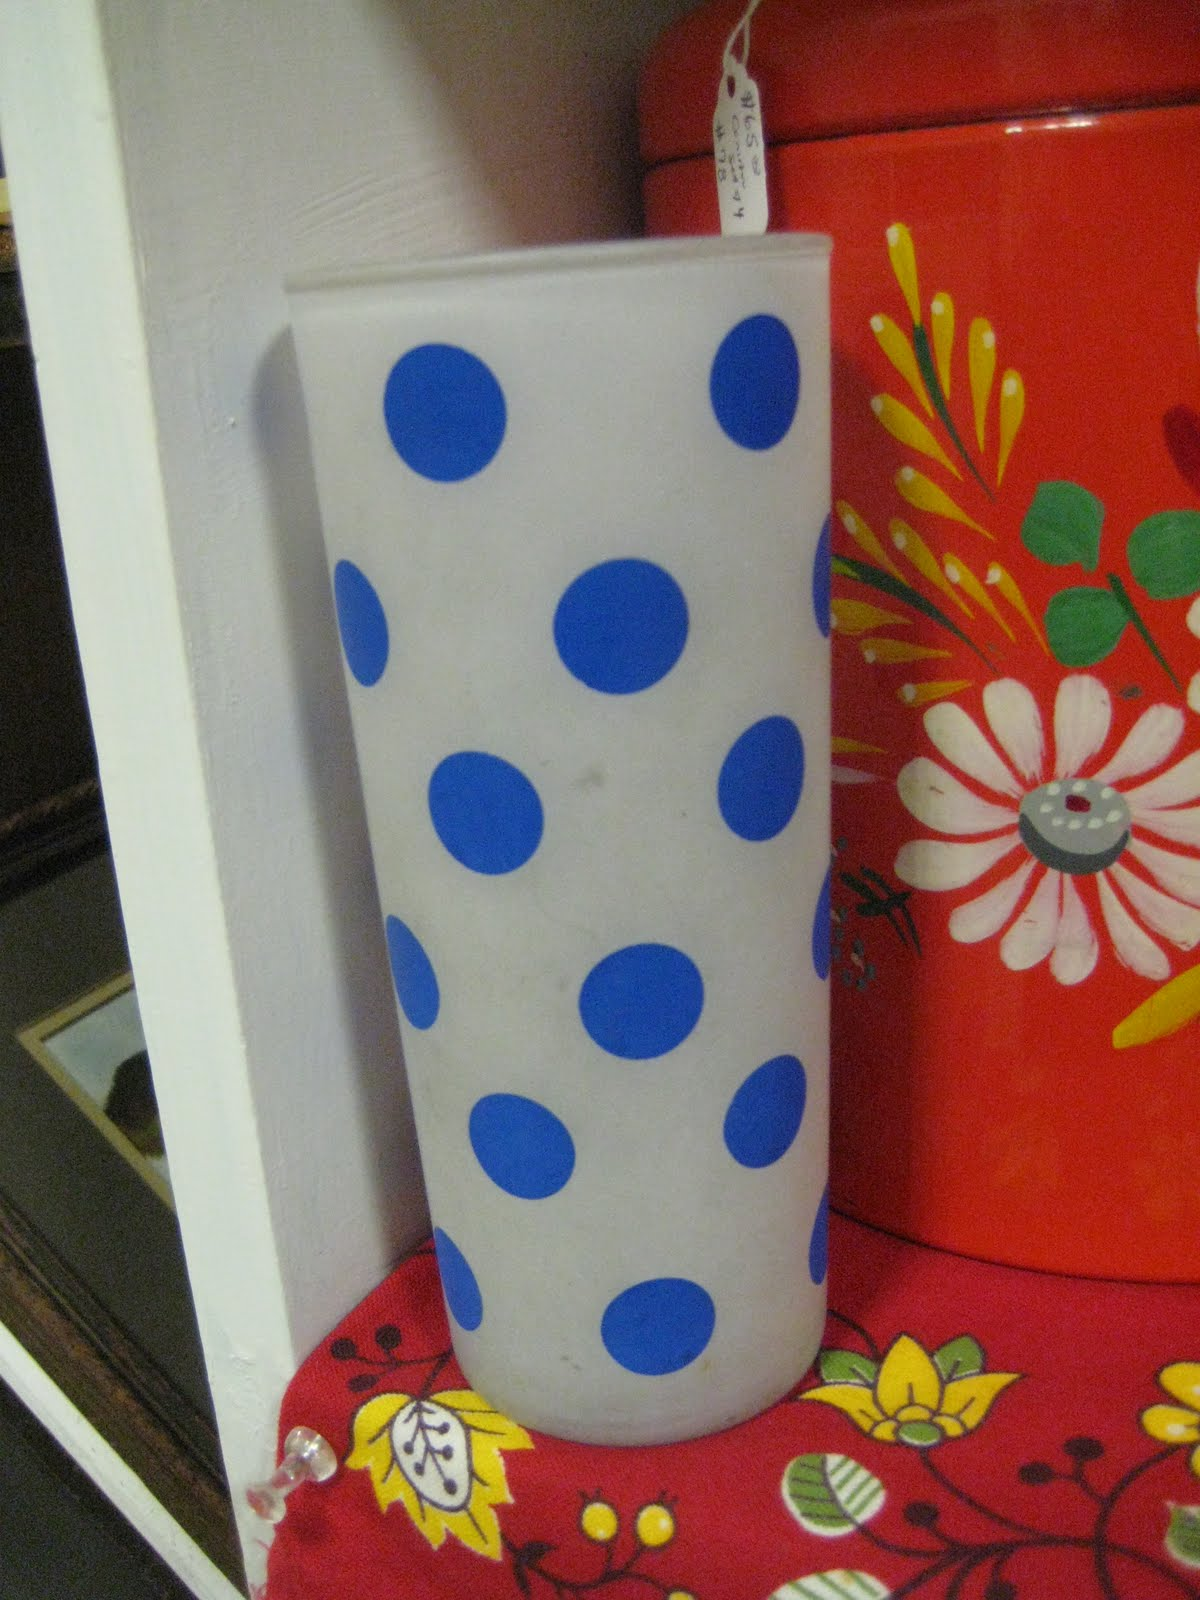 c dianne zweig kitsch n stuff collecting vintage polka dot for example a tea cup collec